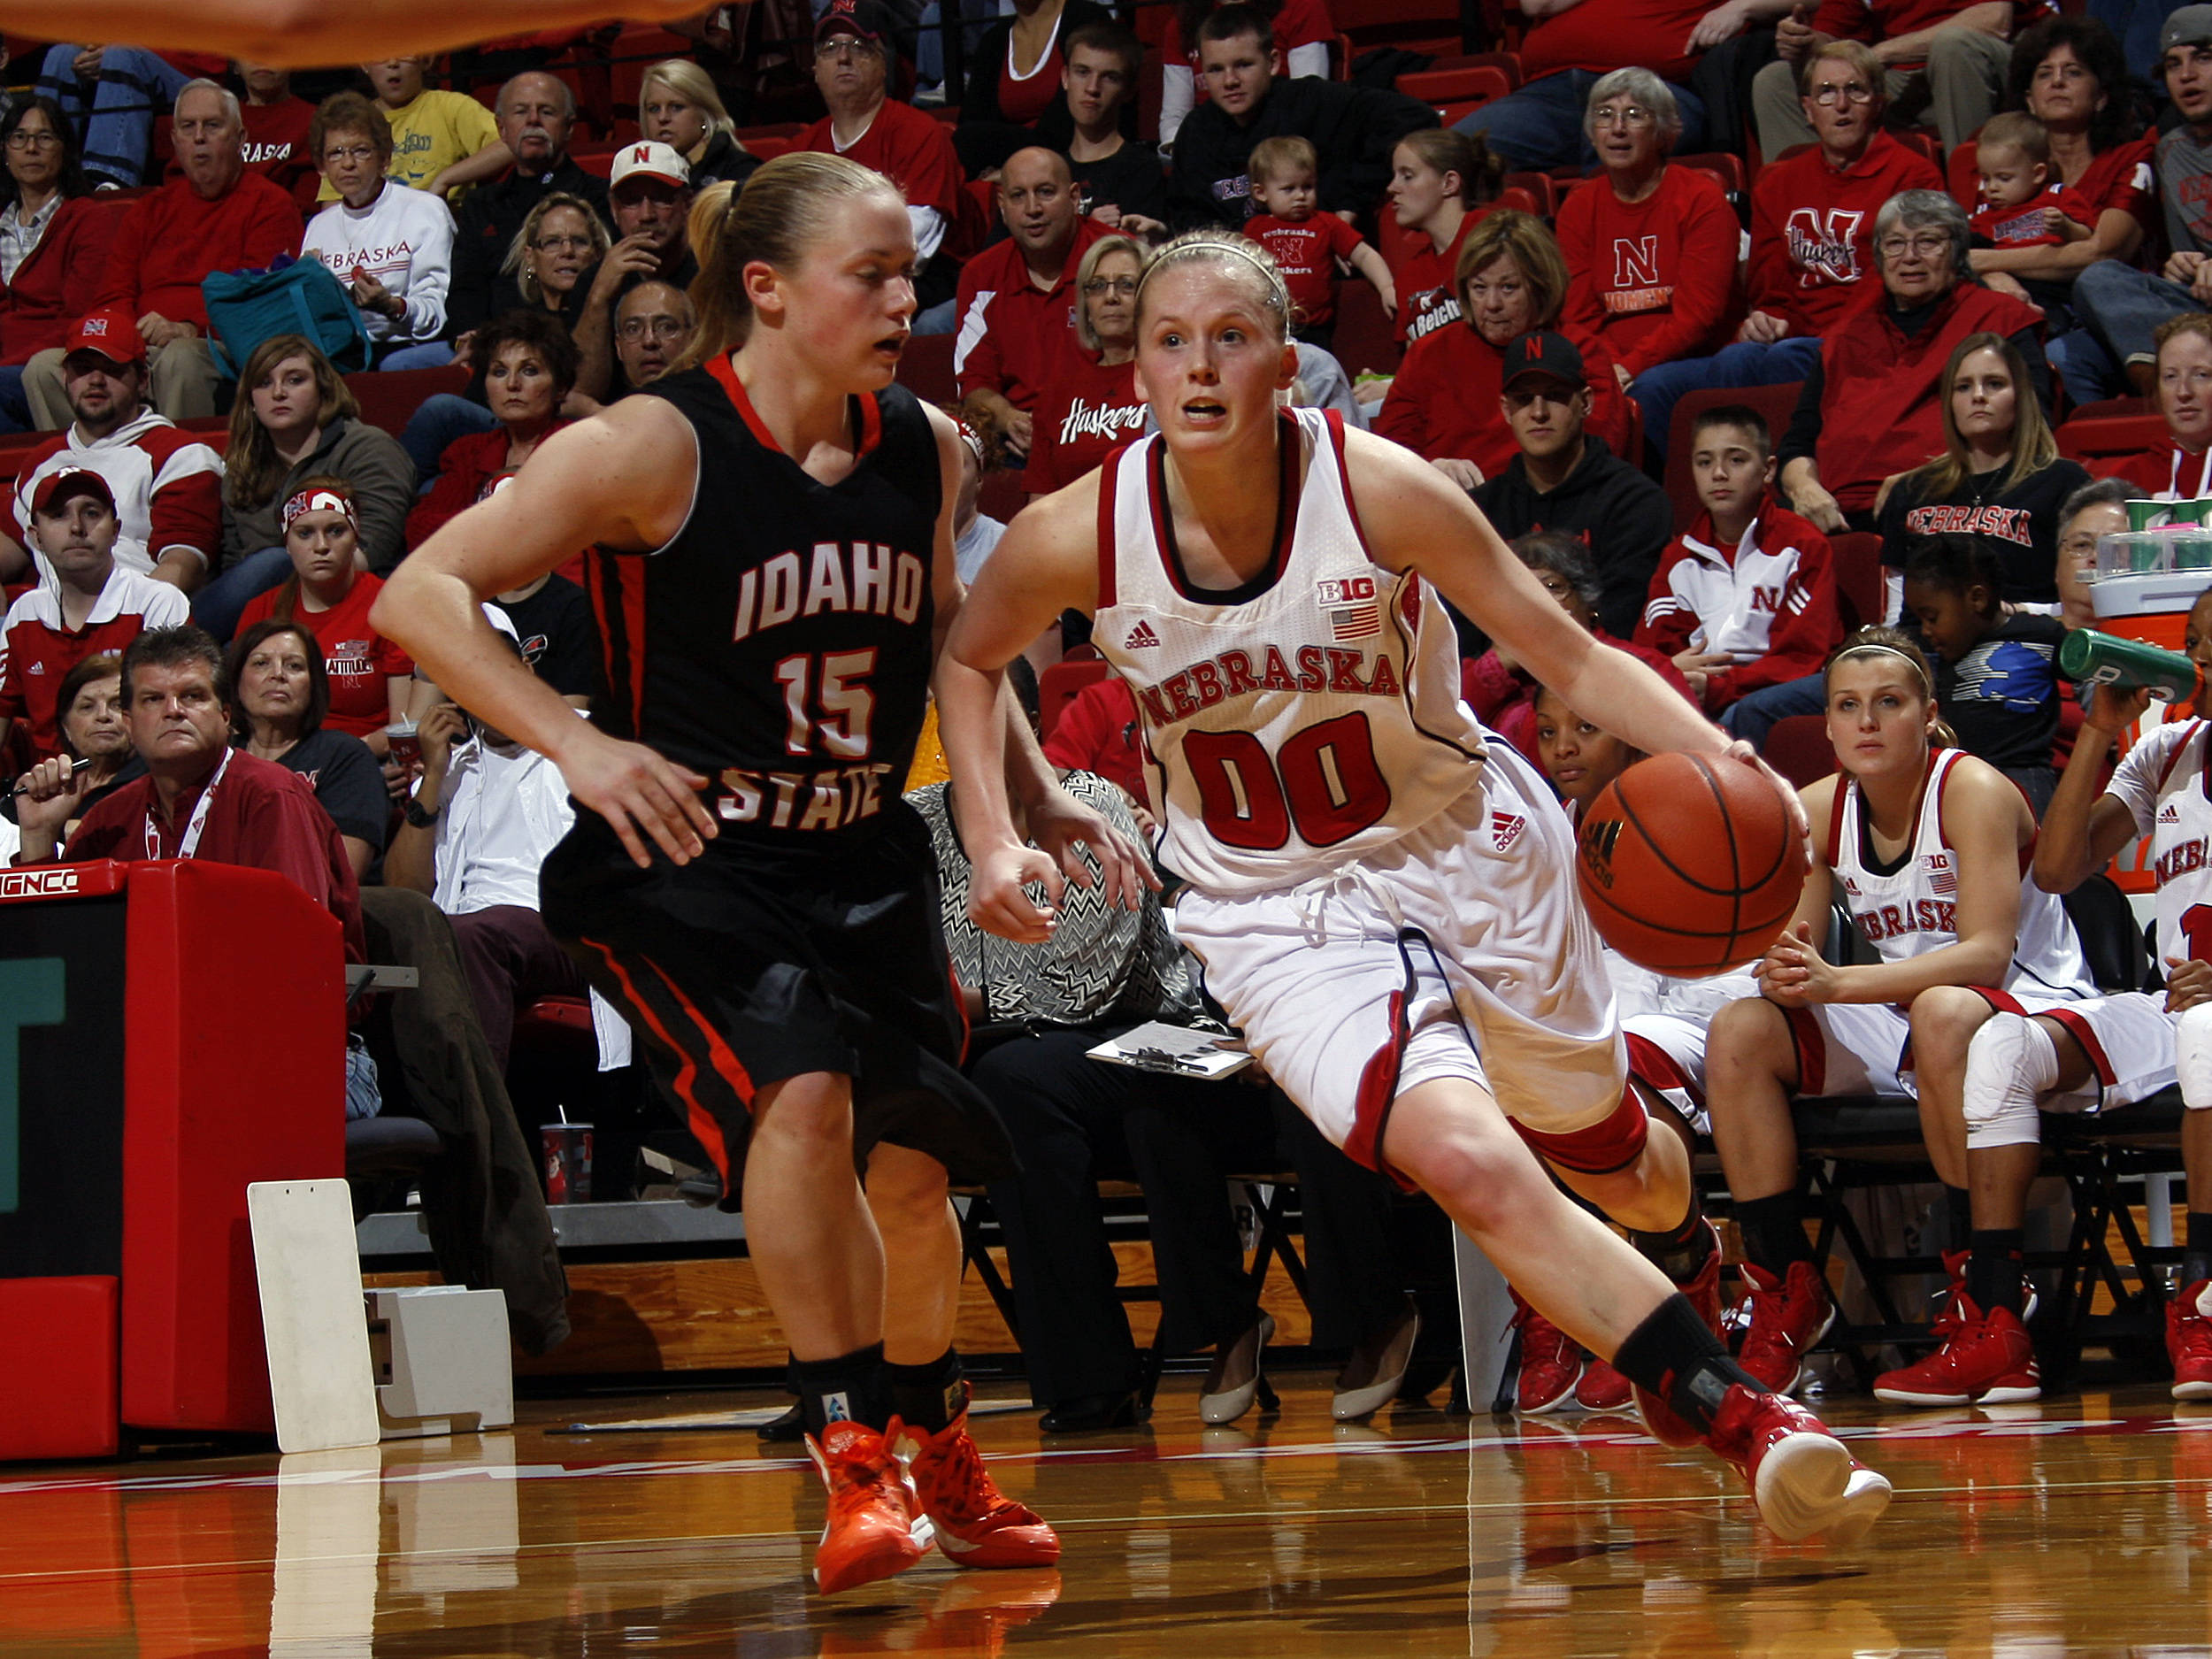 Senior Lindsey Moore drives the lane against an Idaho State defender.